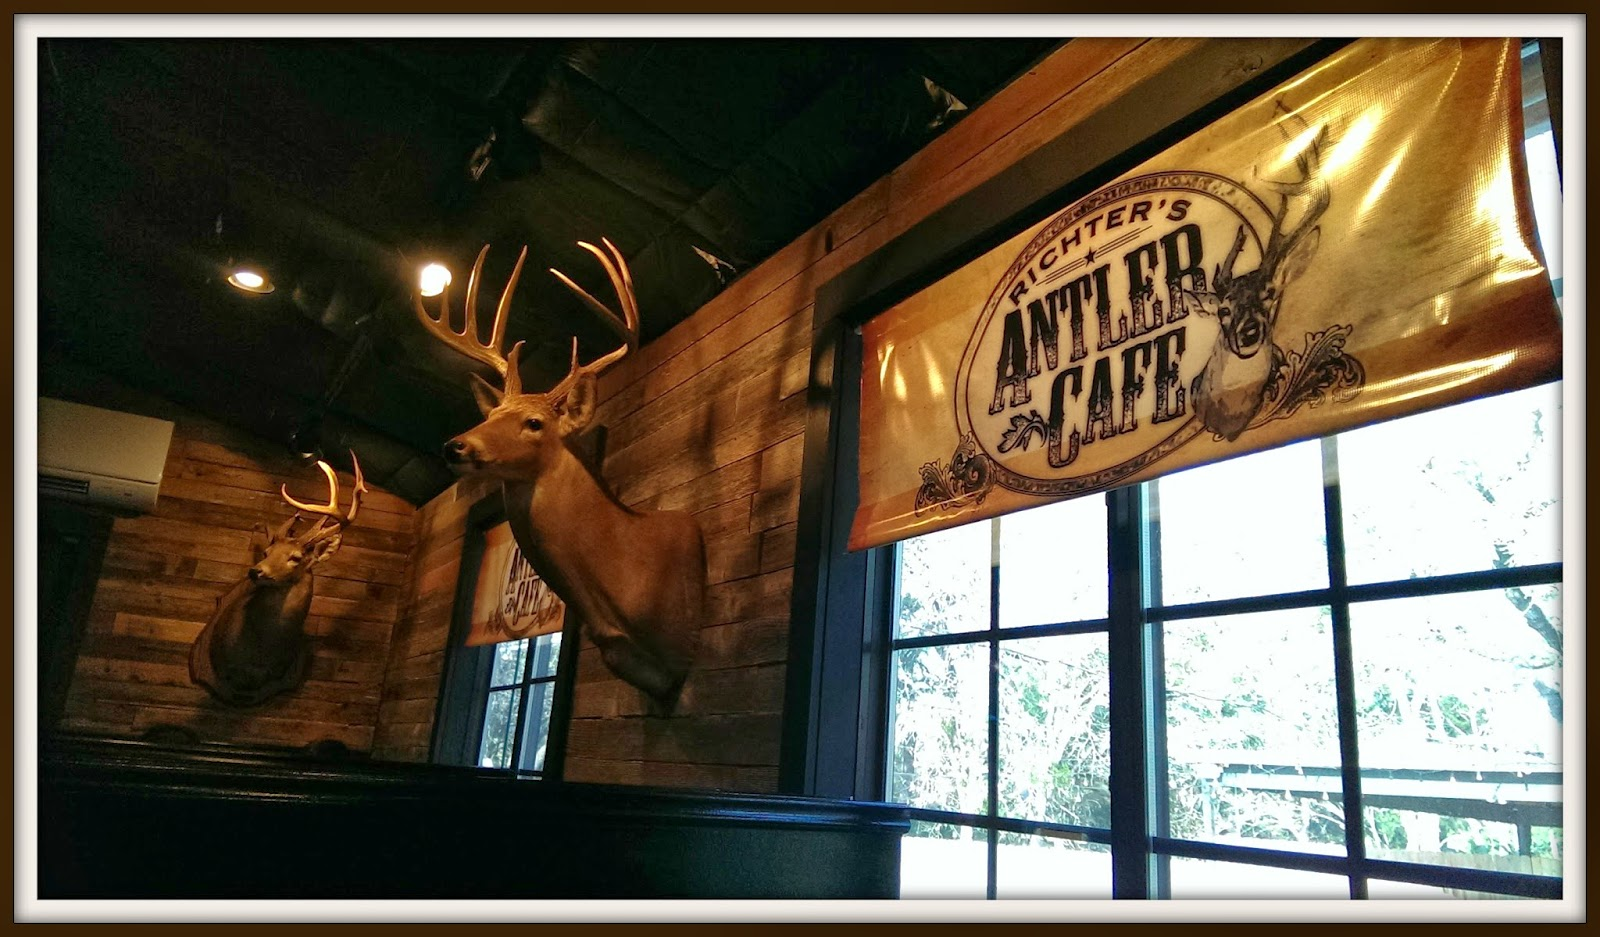 house of fauci u0027s richter u0027s antler cafe house of fauci